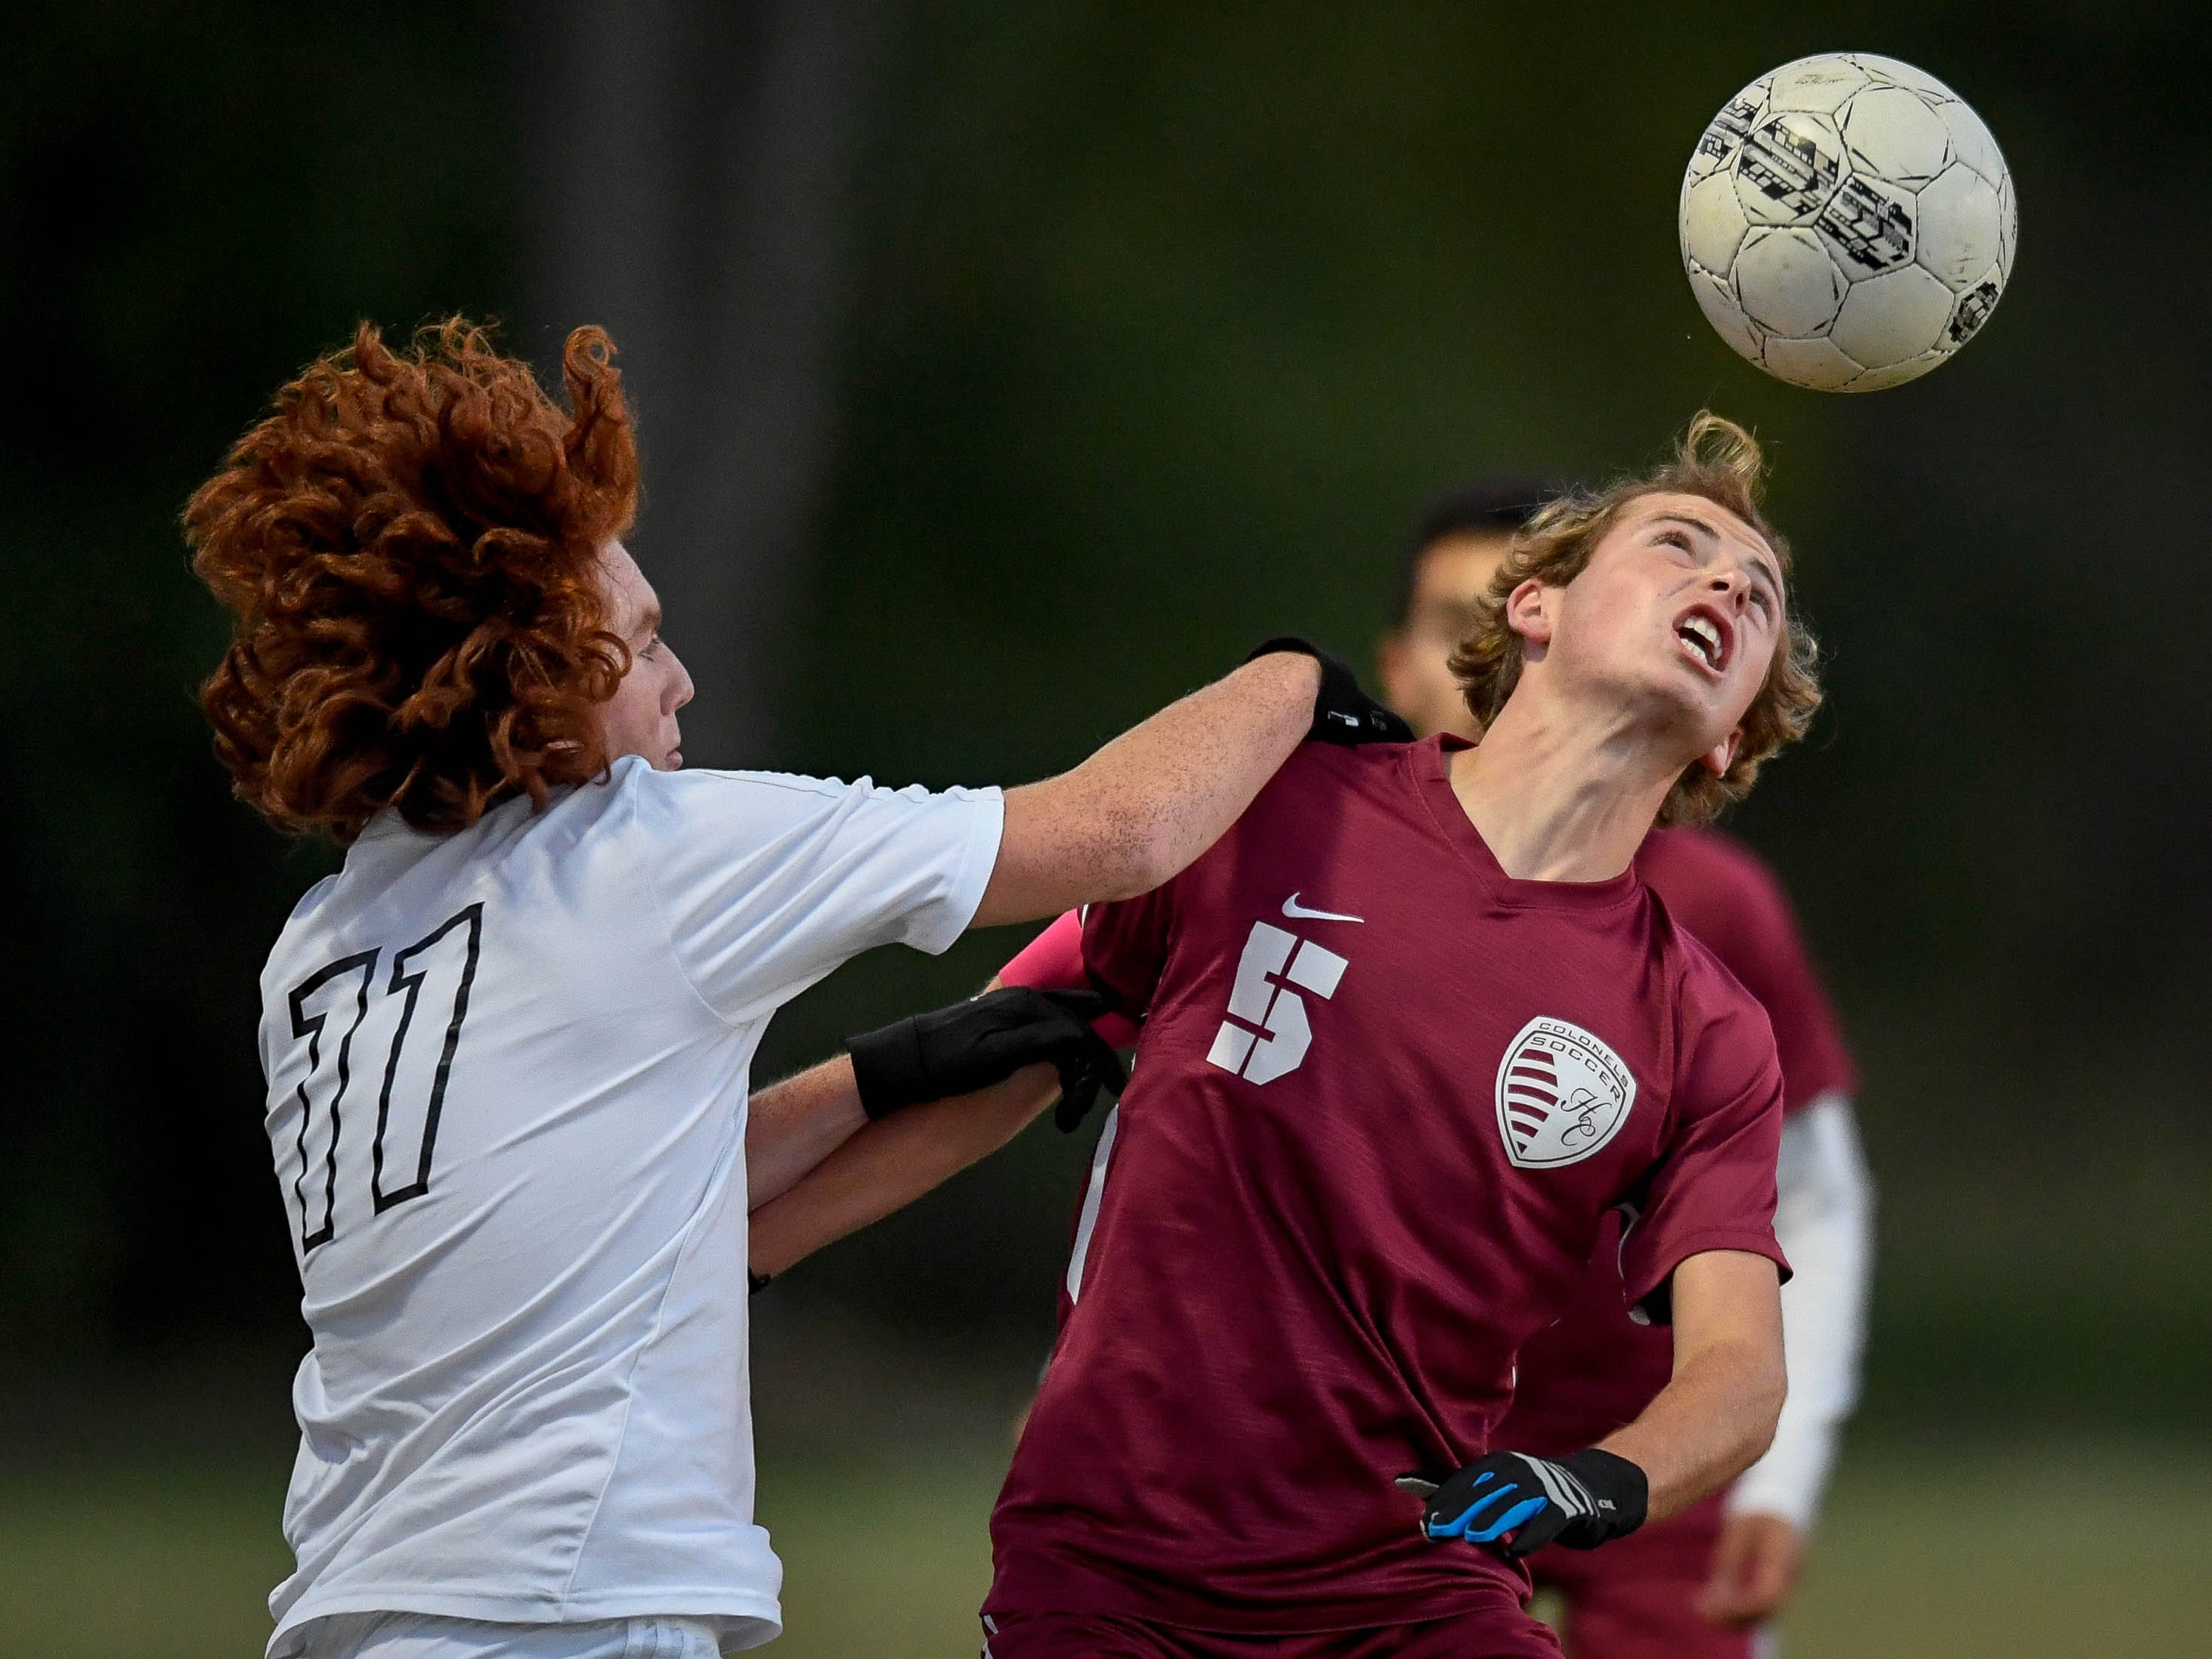 Henderson County's Cale Wright (5) heads the ball under defensive pressure from Hopkinsville's Welby Horn (11) as the Henderson County Colonels play the Hopkinsville Tigers in the regional final at Madisonville-North Hopkins High School Thursday, October 18, 2018.